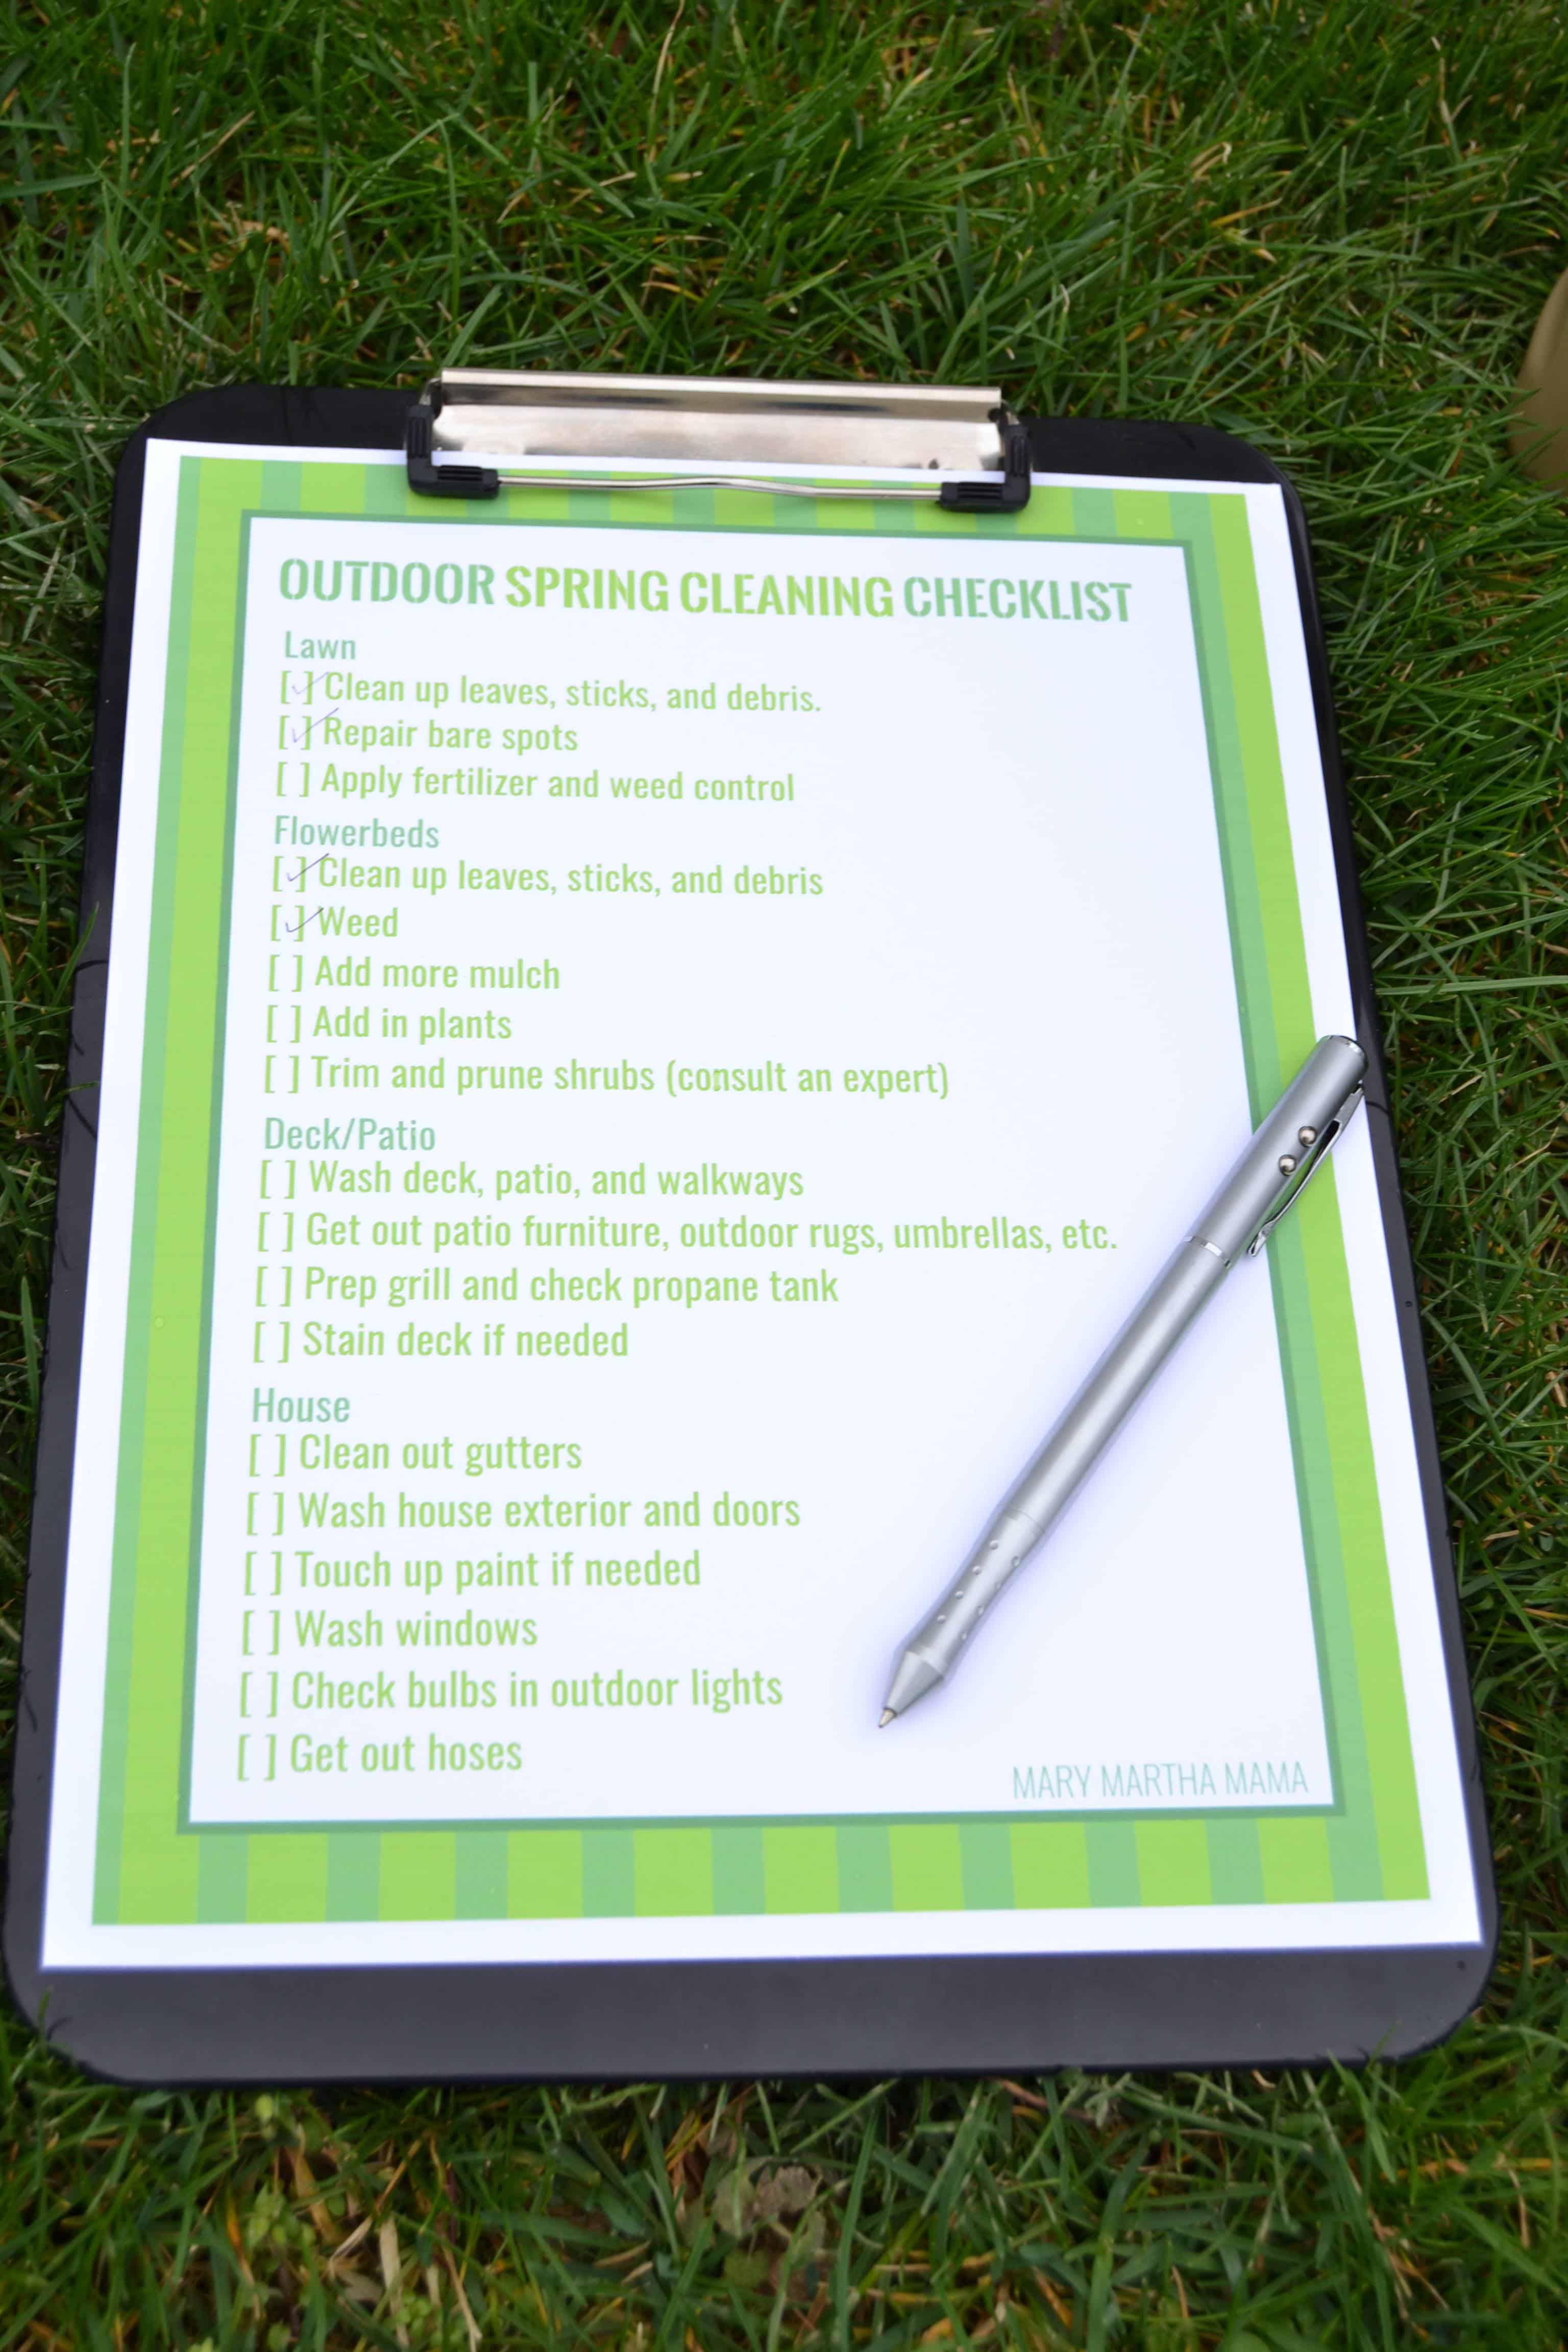 Operation Spring Spruce Up [Outdoor Spring Cleaning Checklist]